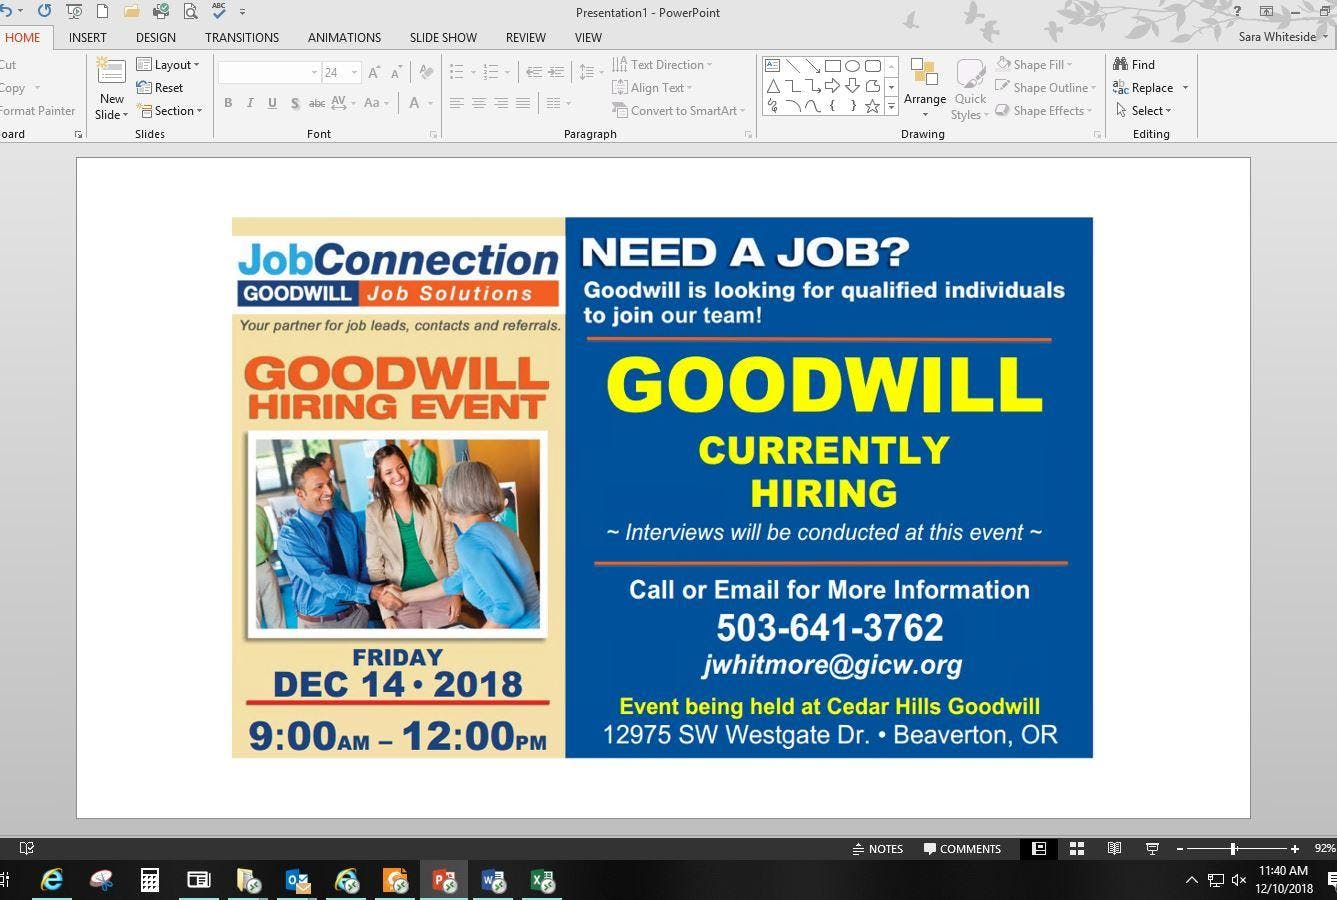 Goodwill is Hiring! Beaverton - 12/14/18